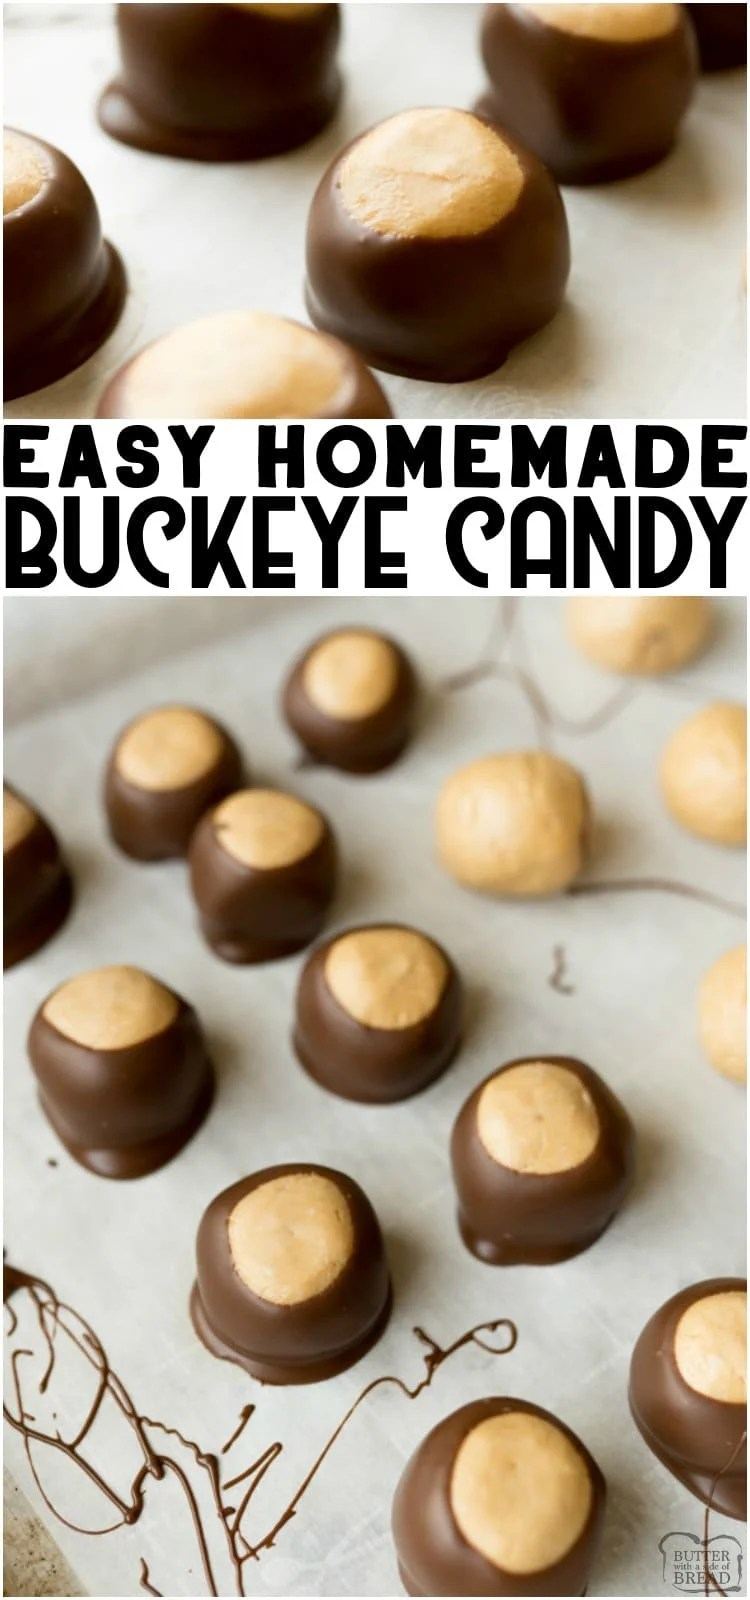 Buckeye Balls are simple, peanut butter and chocolate no bake candies. Buckeye candy is super easy to make and no one can resist these easy homemade candies!